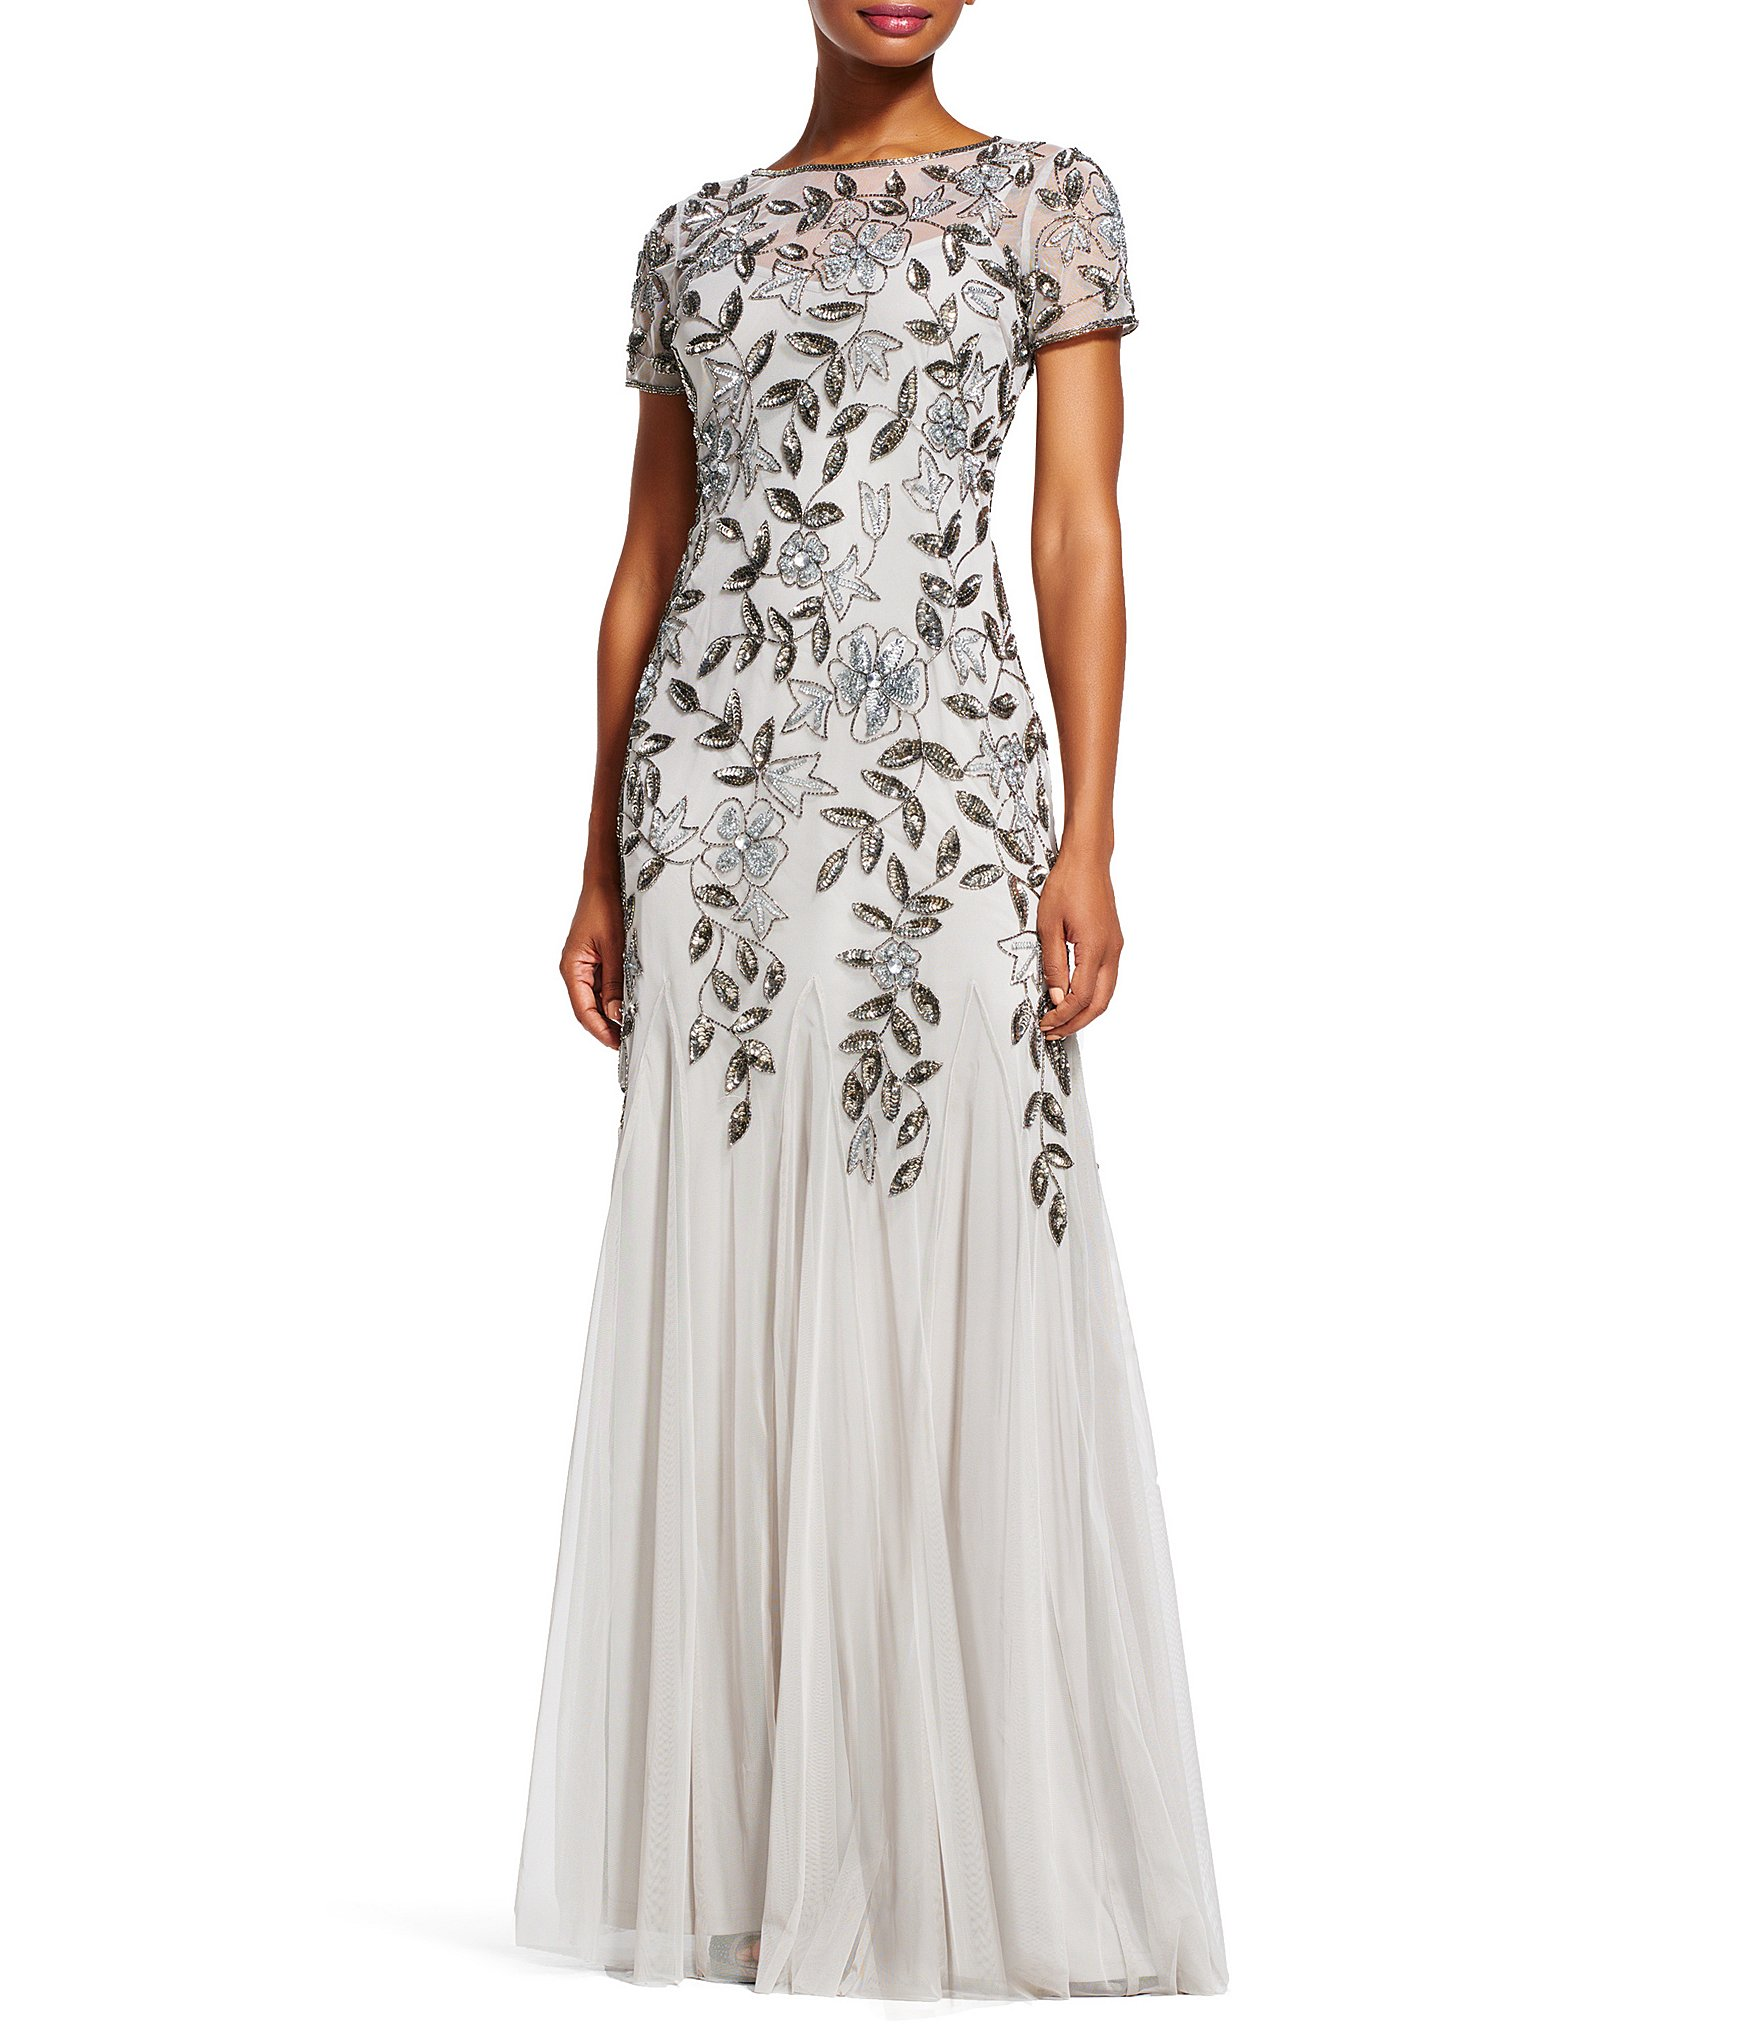 Adrianna papell petite floral beaded gown dillards for Silver wedding dresses for sale